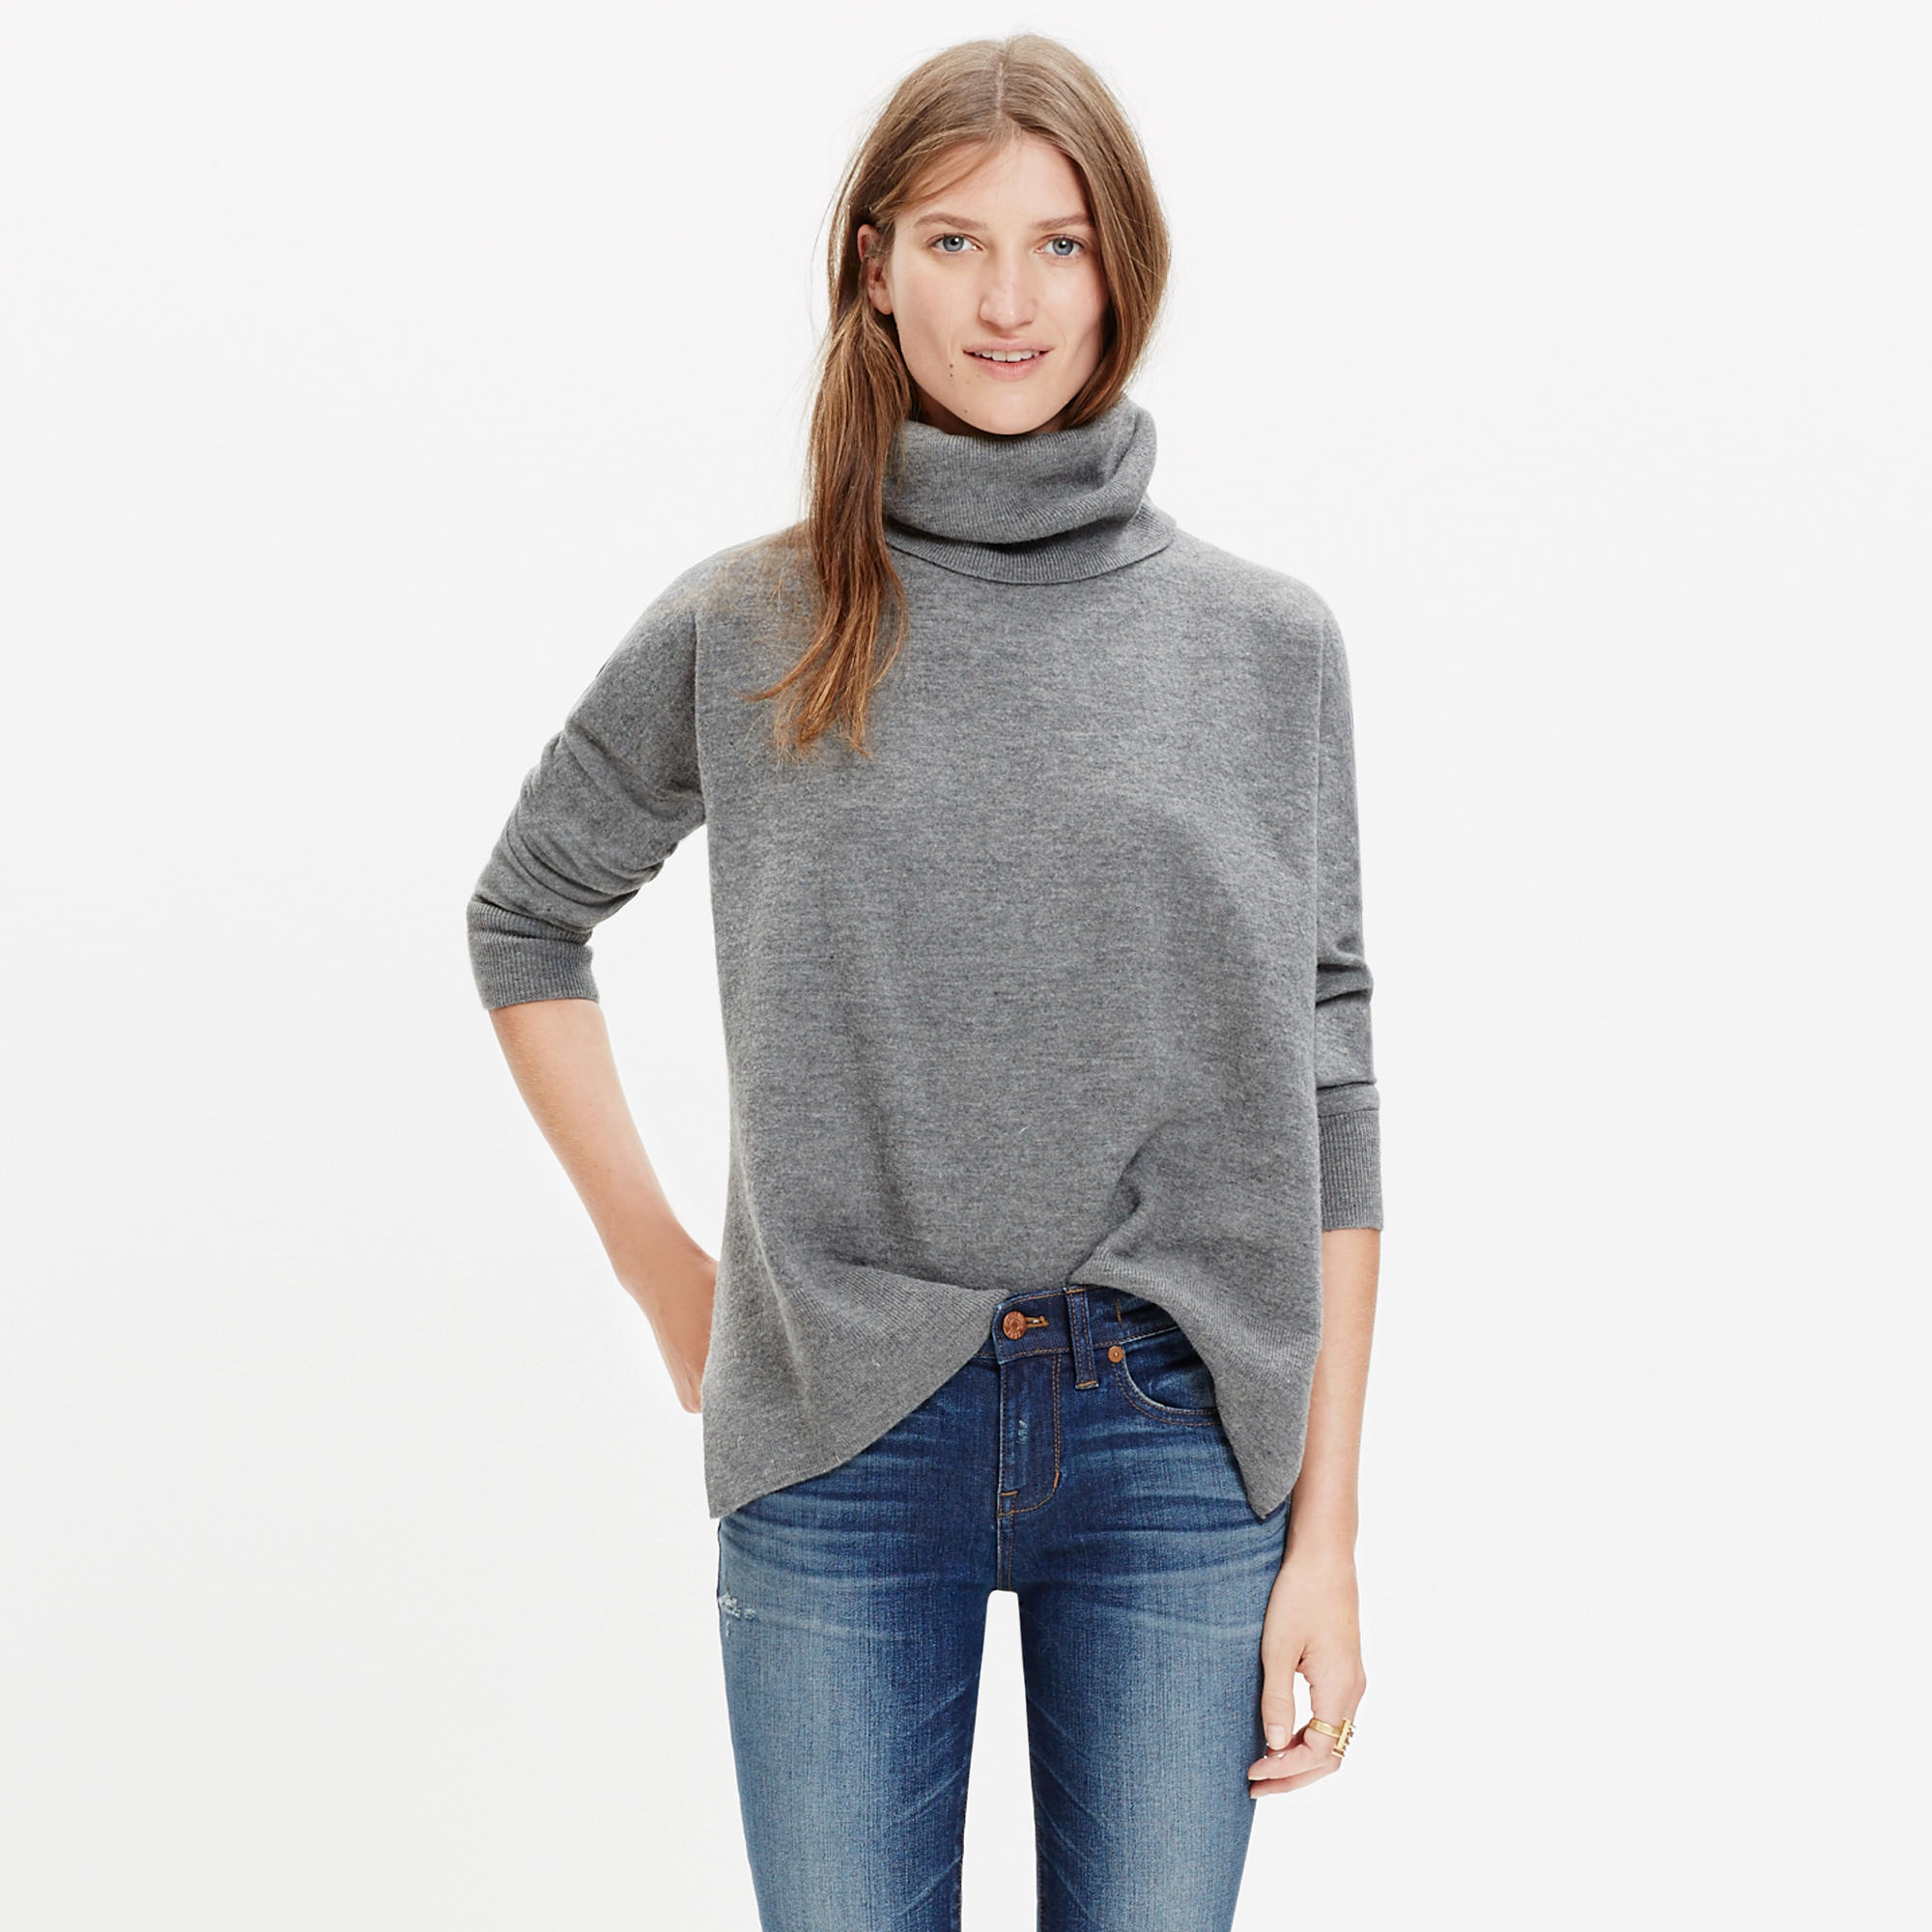 Merino Turtleneck Sweater : turtlenecks | Madewell